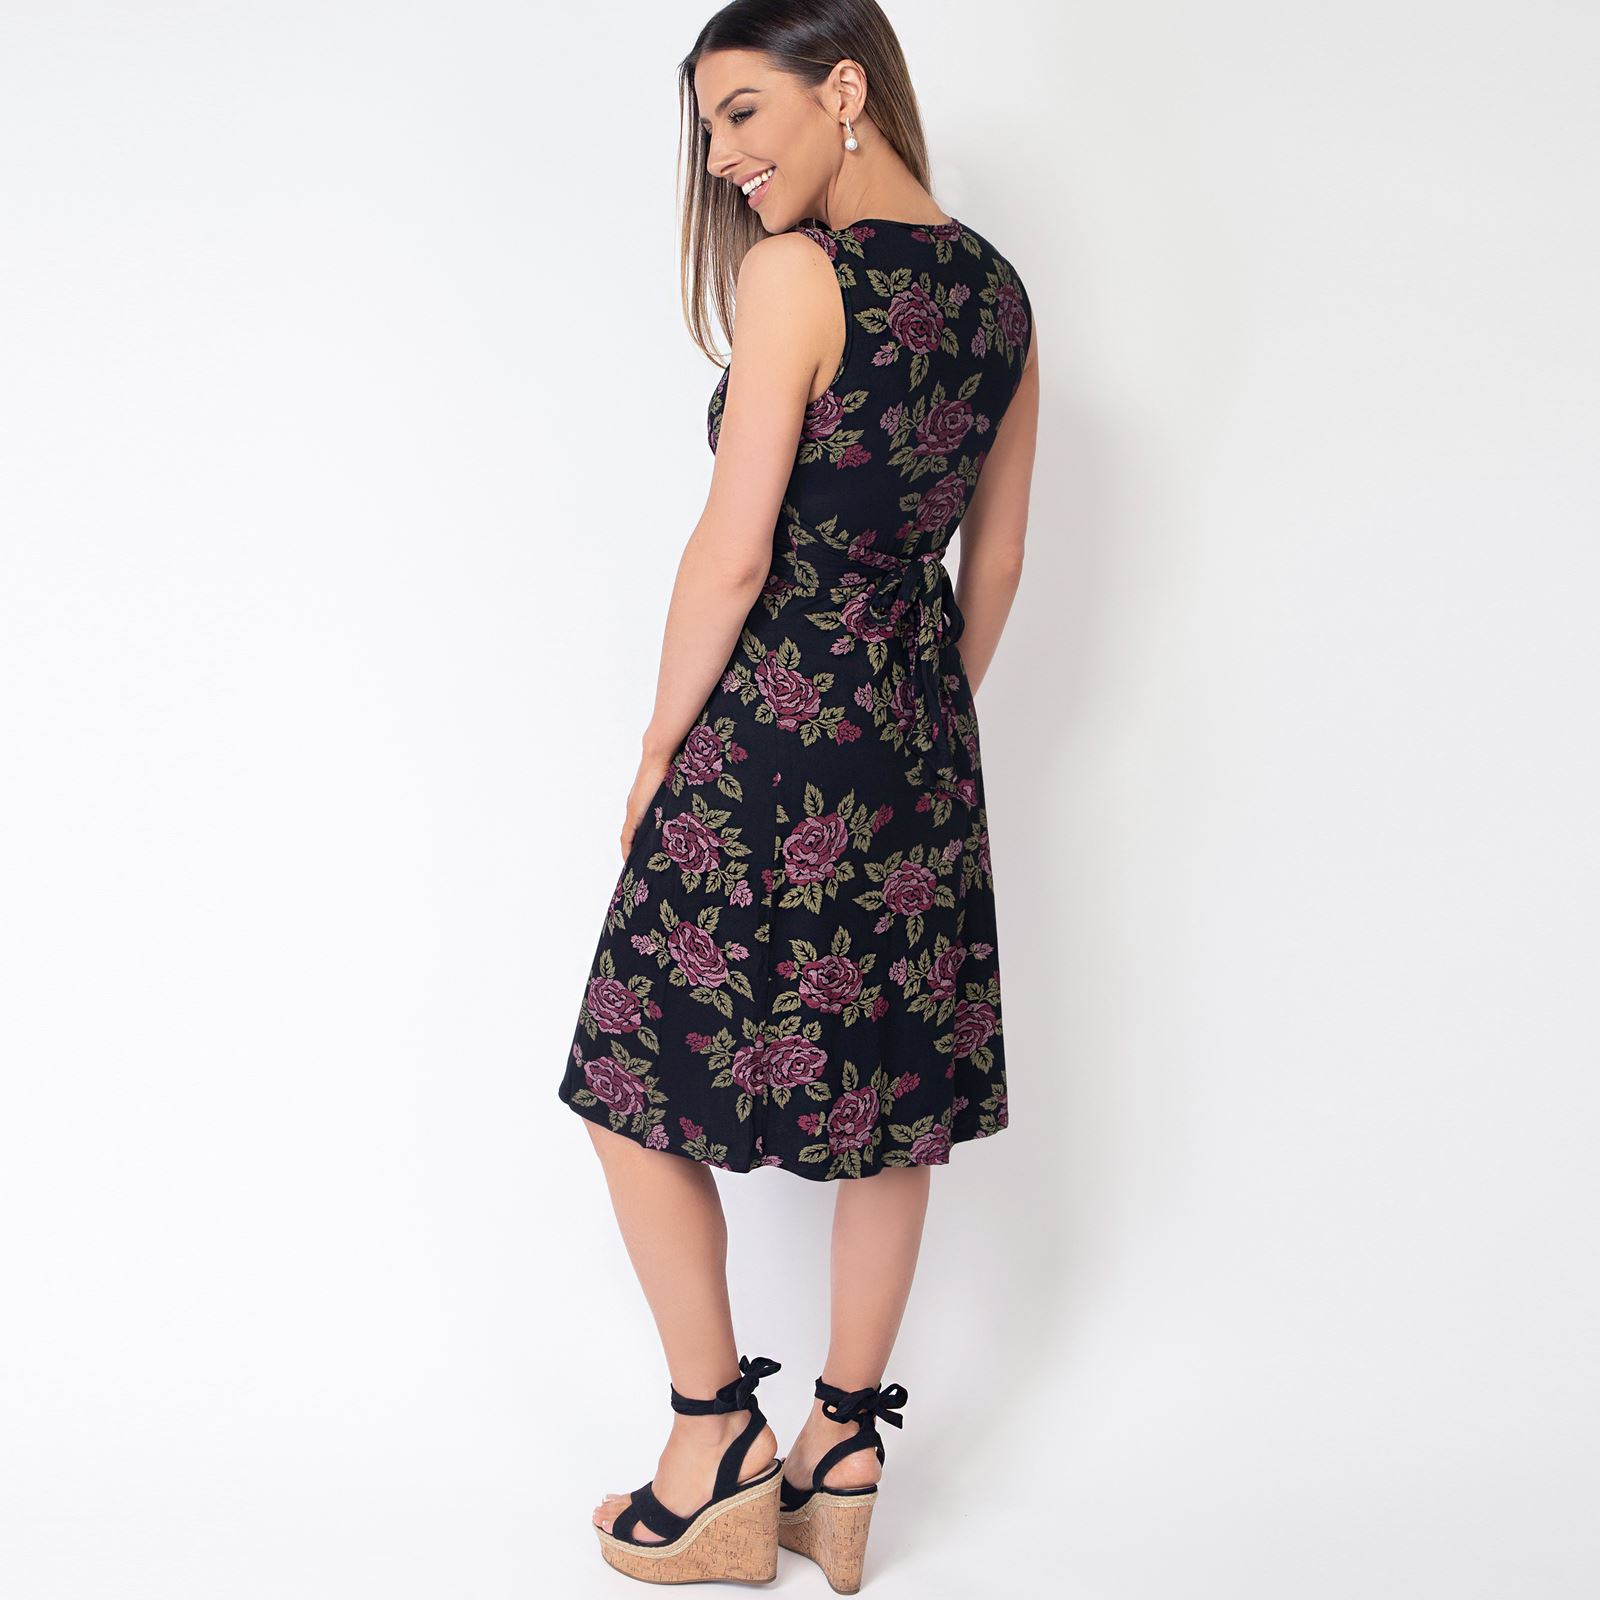 Womens-Floral-Print-Dress-Midi-Drape-Ruched-Front-Knot-Tie-Belt-Casual-Party thumbnail 4